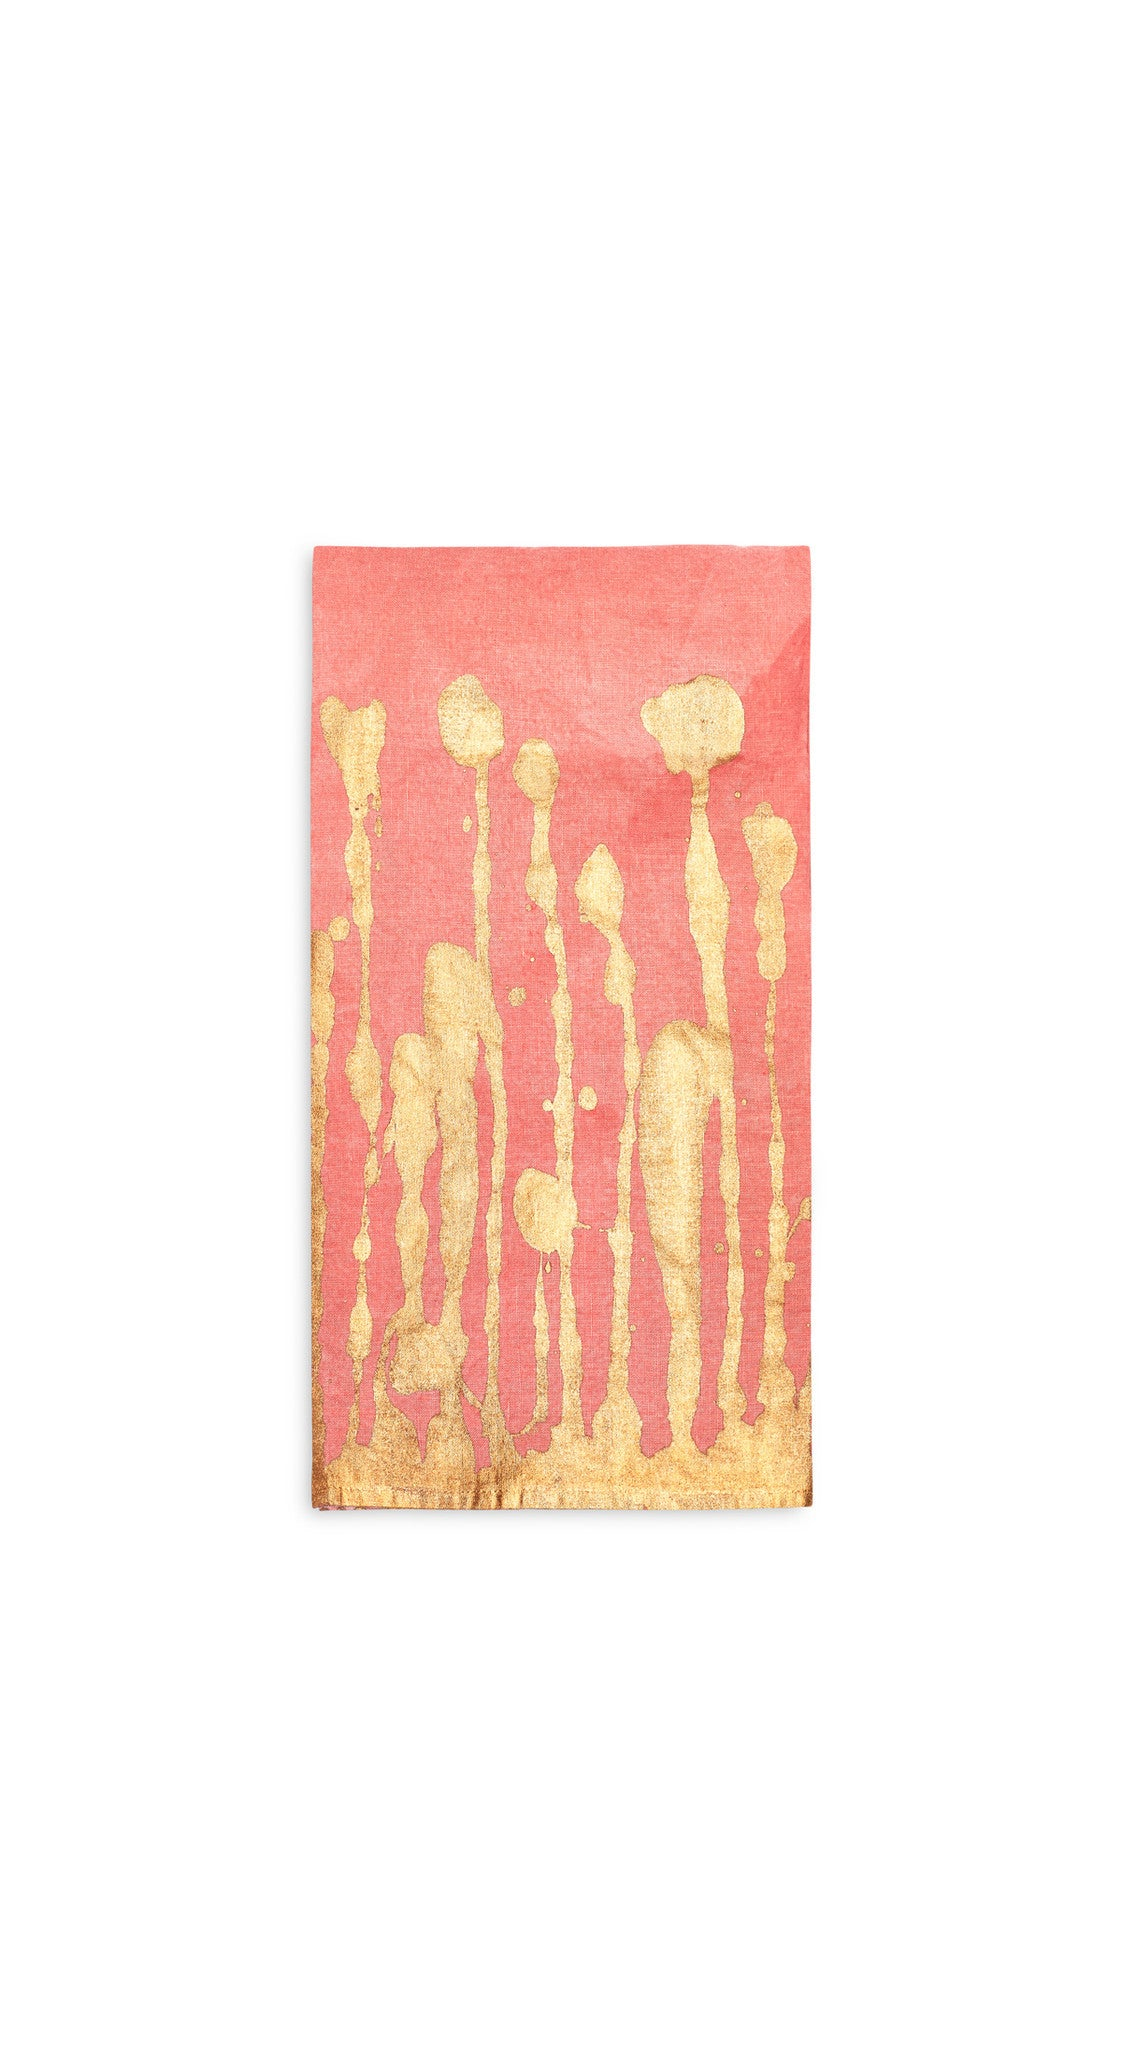 Ink Linen Napkin in Deep Pink with Gold Drips